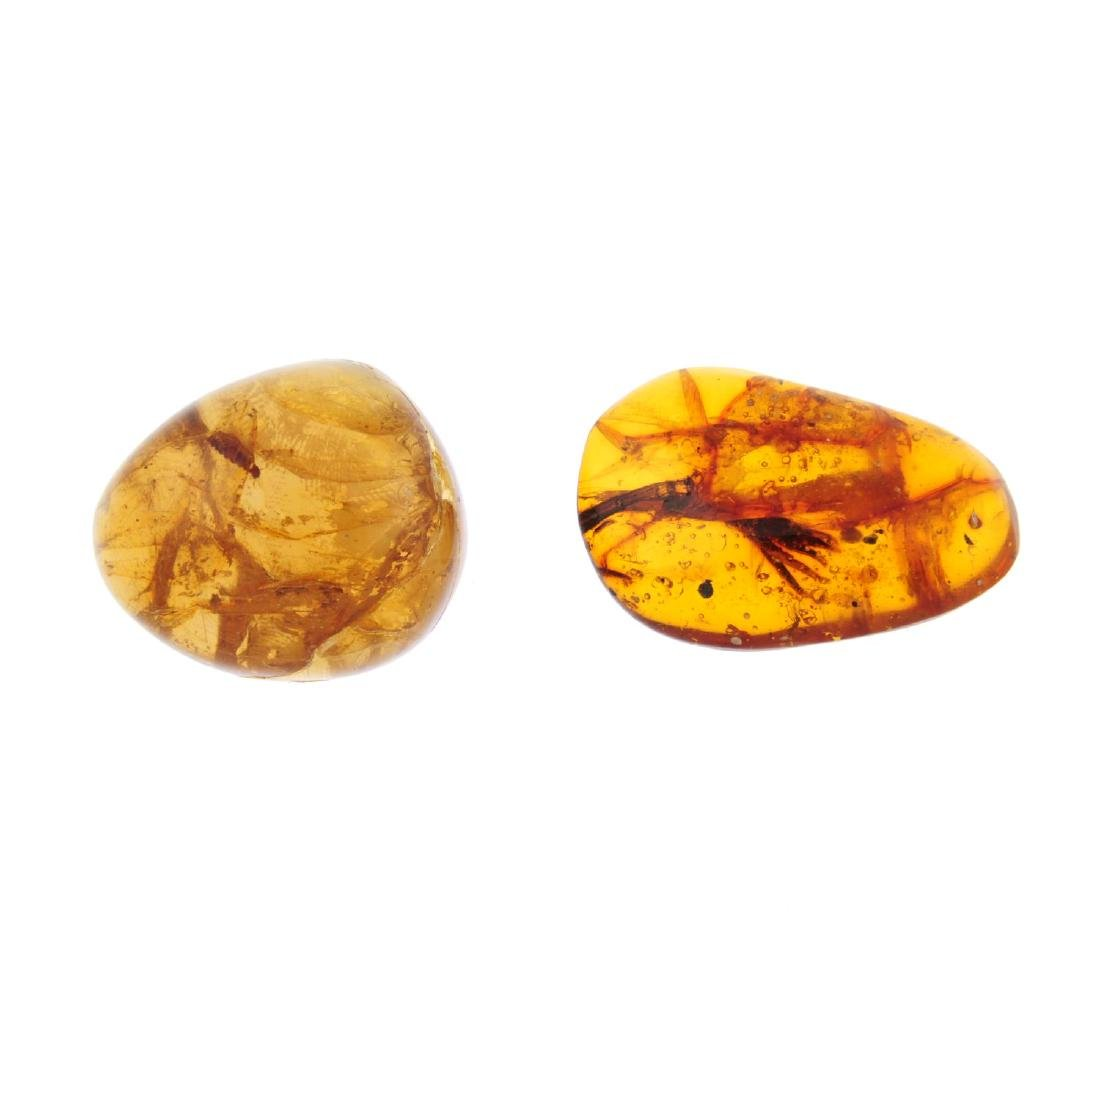 Two pieces of natural Dominican Republic amber with